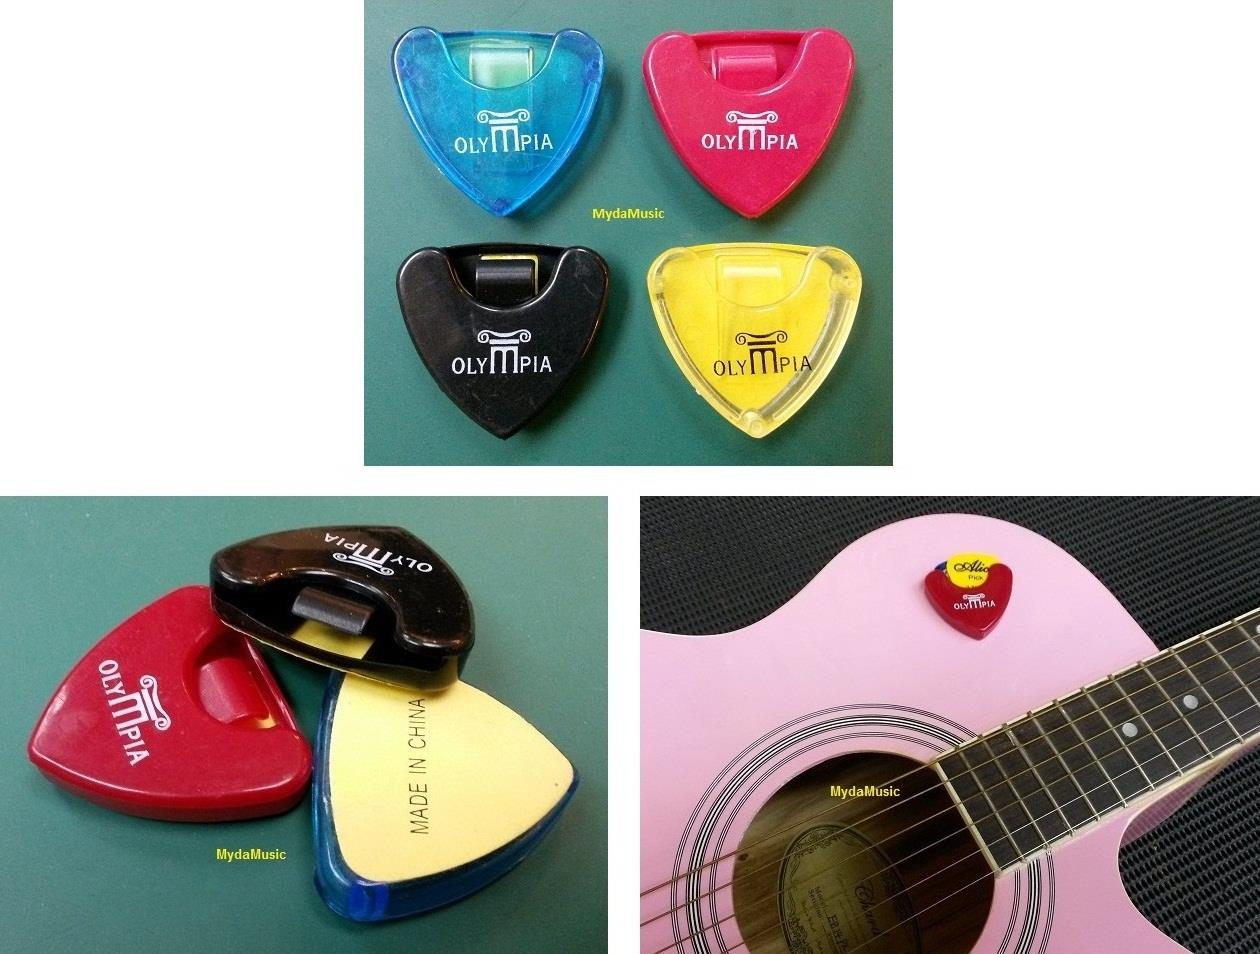 OLYMPIA Guitar Pick Holder. Pemegang Pemetik Gitar